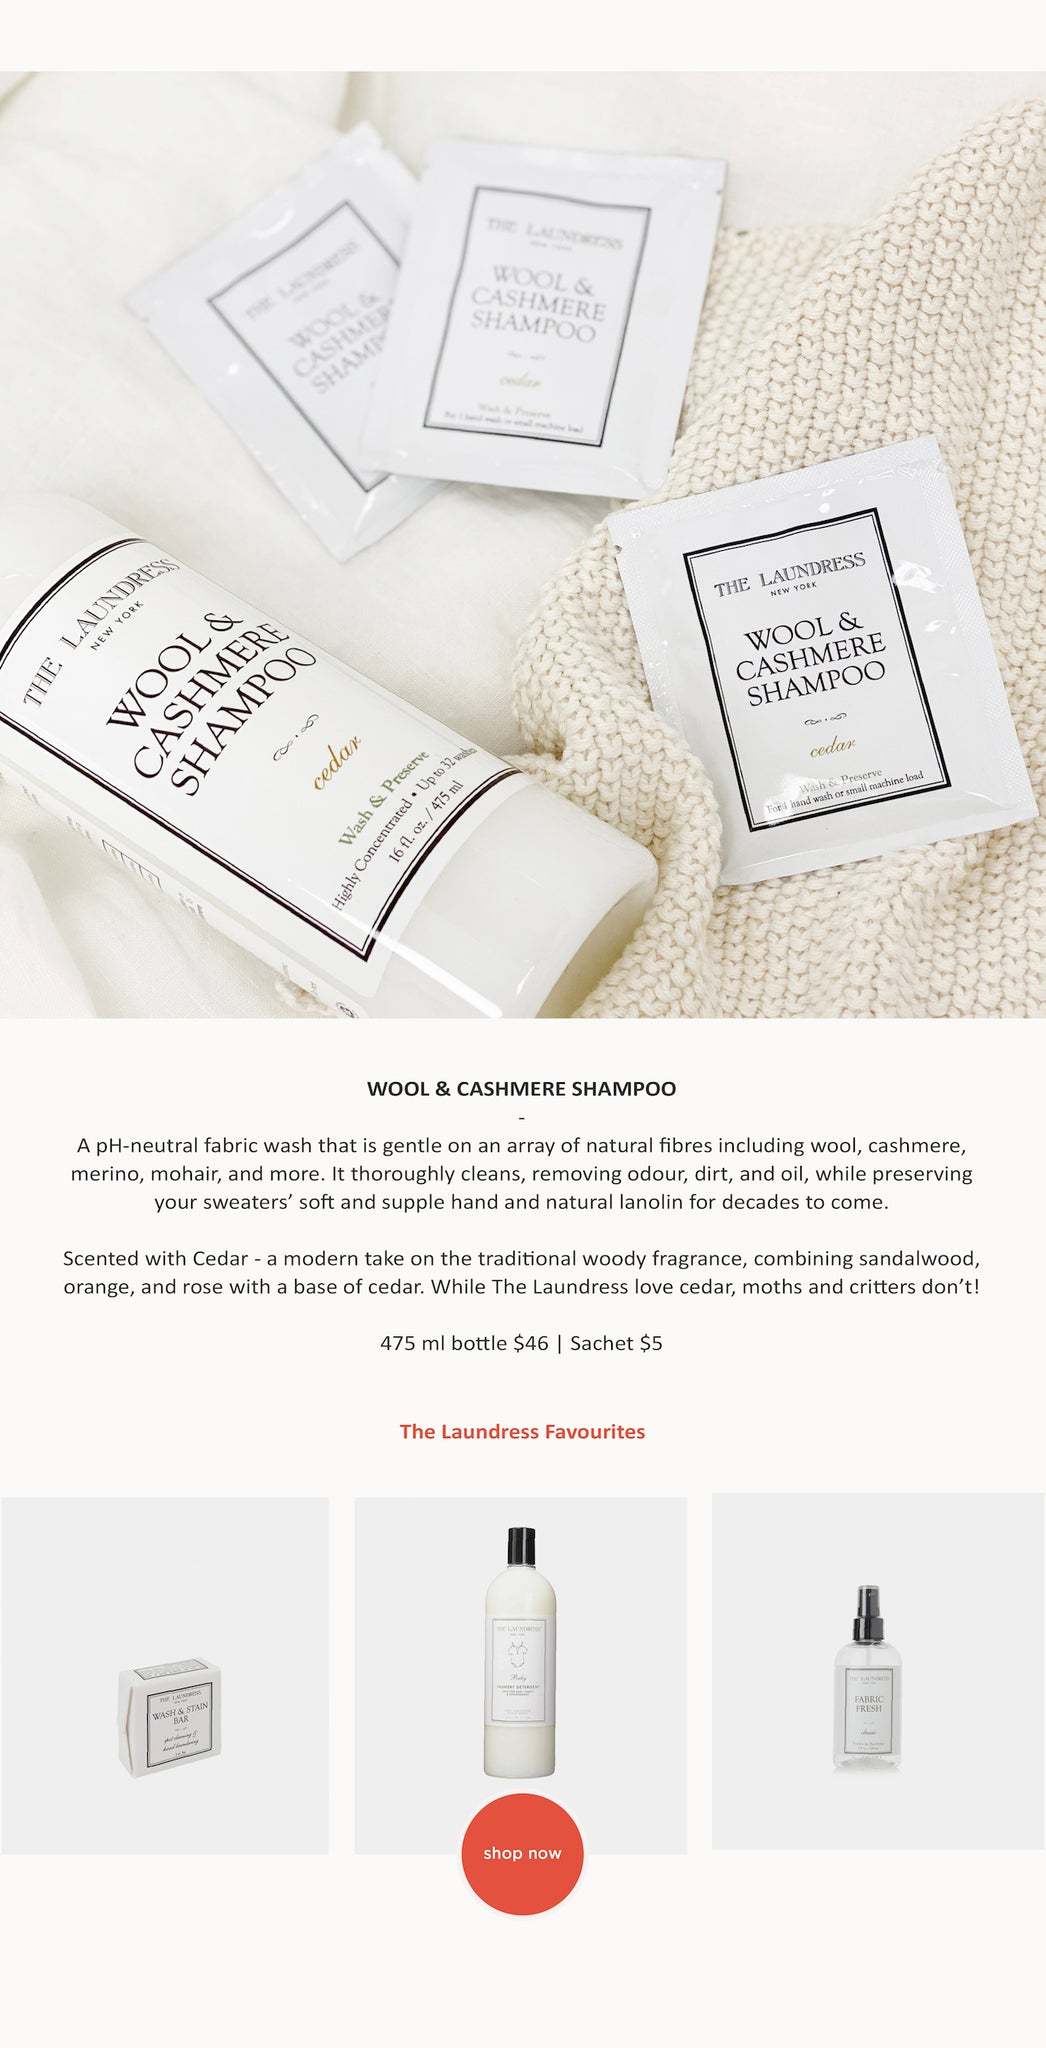 Paper Plane – Home Luxuries – Baina – The Laundress